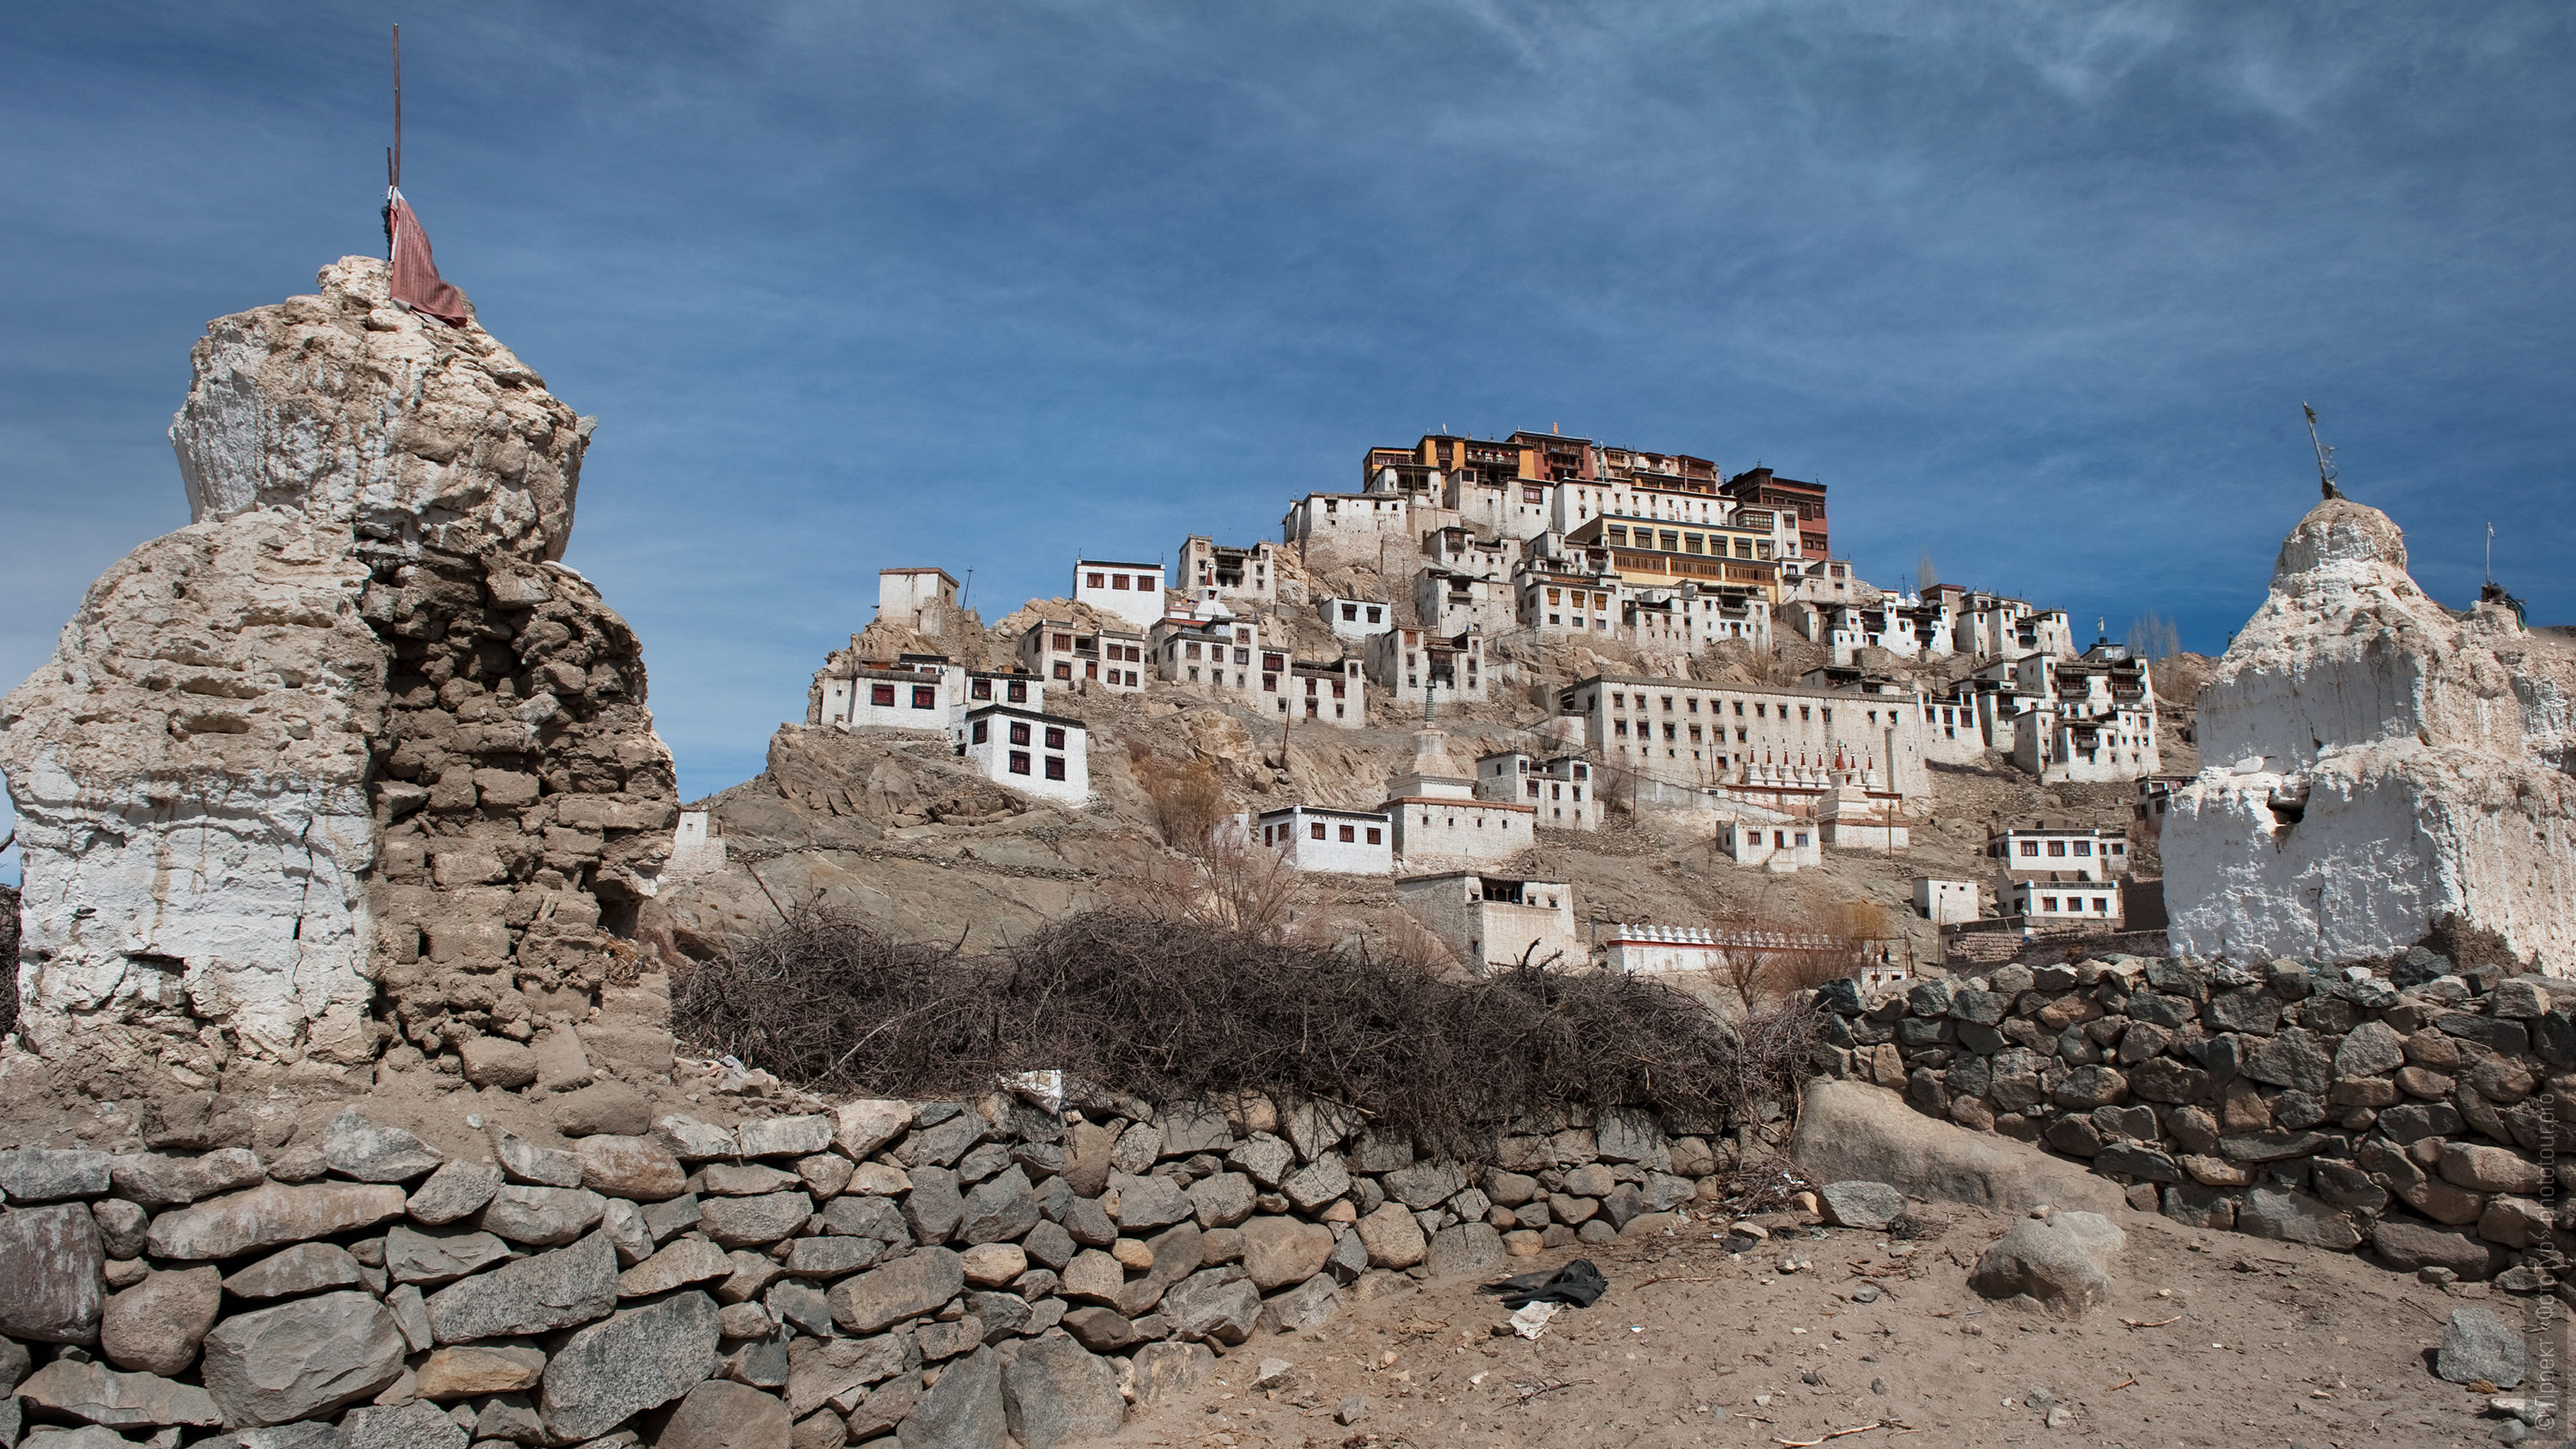 Buddhist monastery Tiksey Gonpa. Photo tour to Tibet for the Winter Mysteries in Ladakh, Stok and Matho monasteries, 01.03. - 03/10/2020